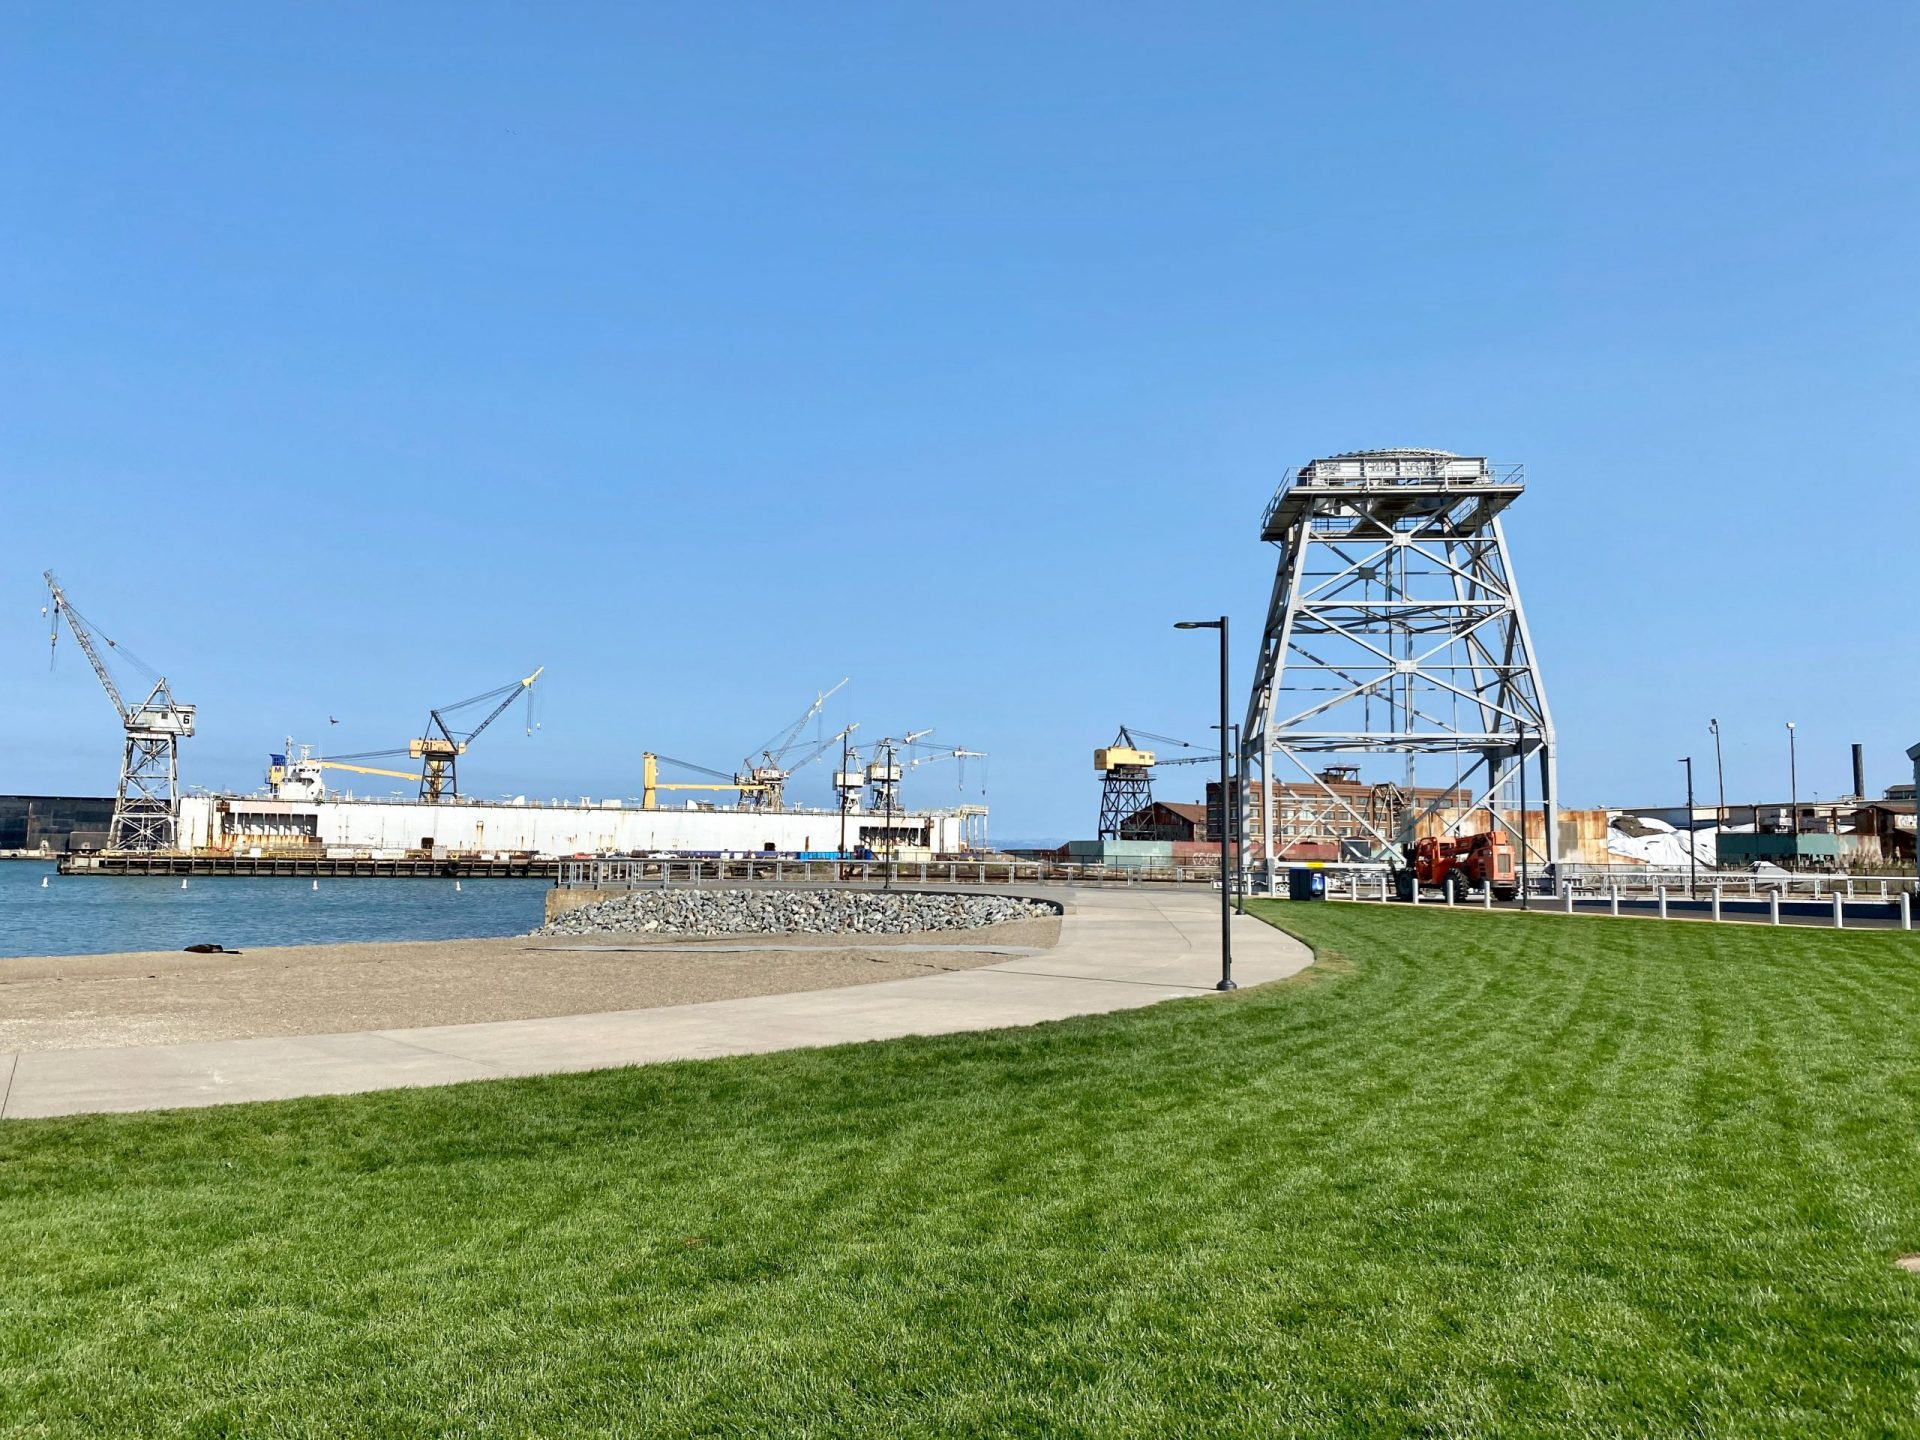 green lawn and beach with crane structure beyond